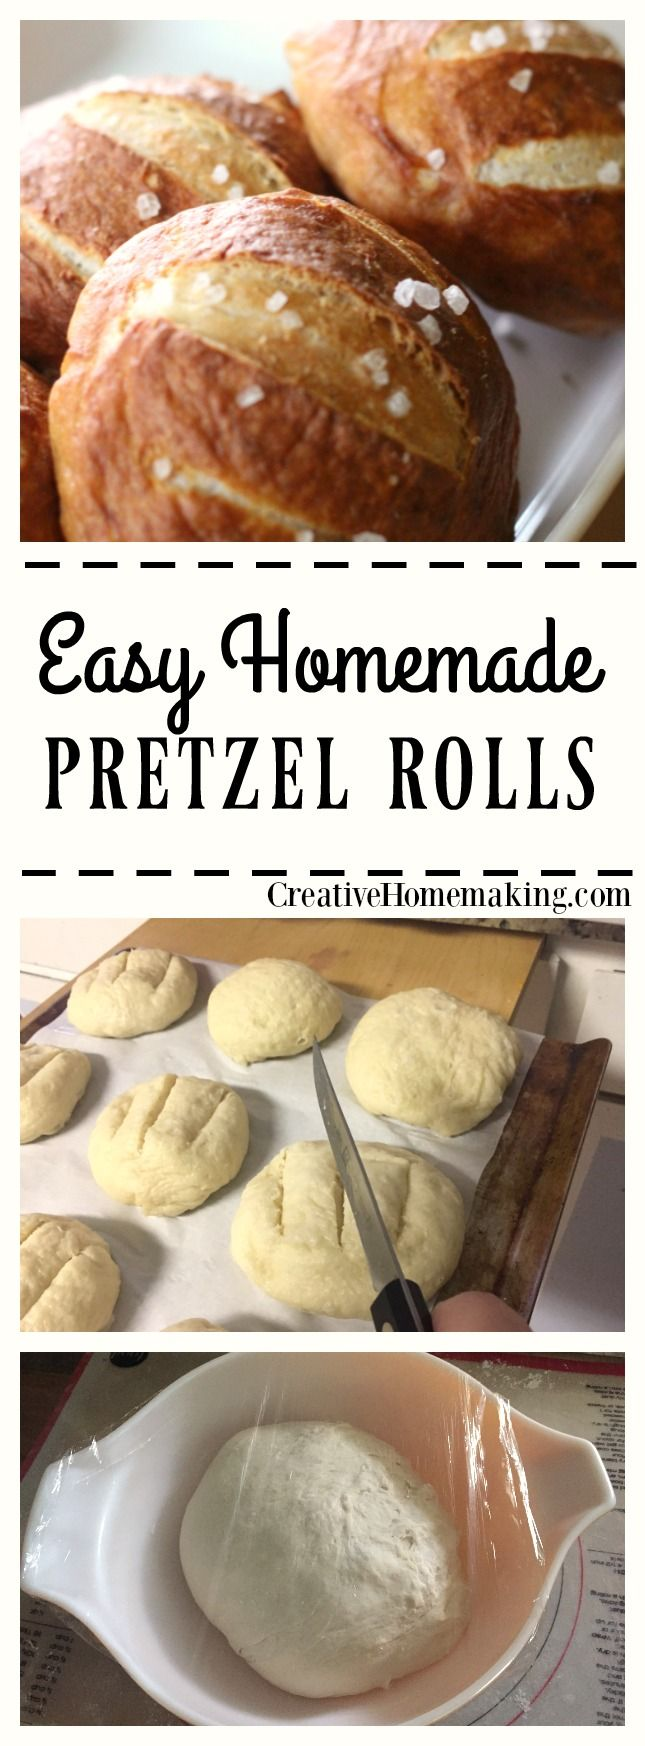 How to make rolls at home by yourself